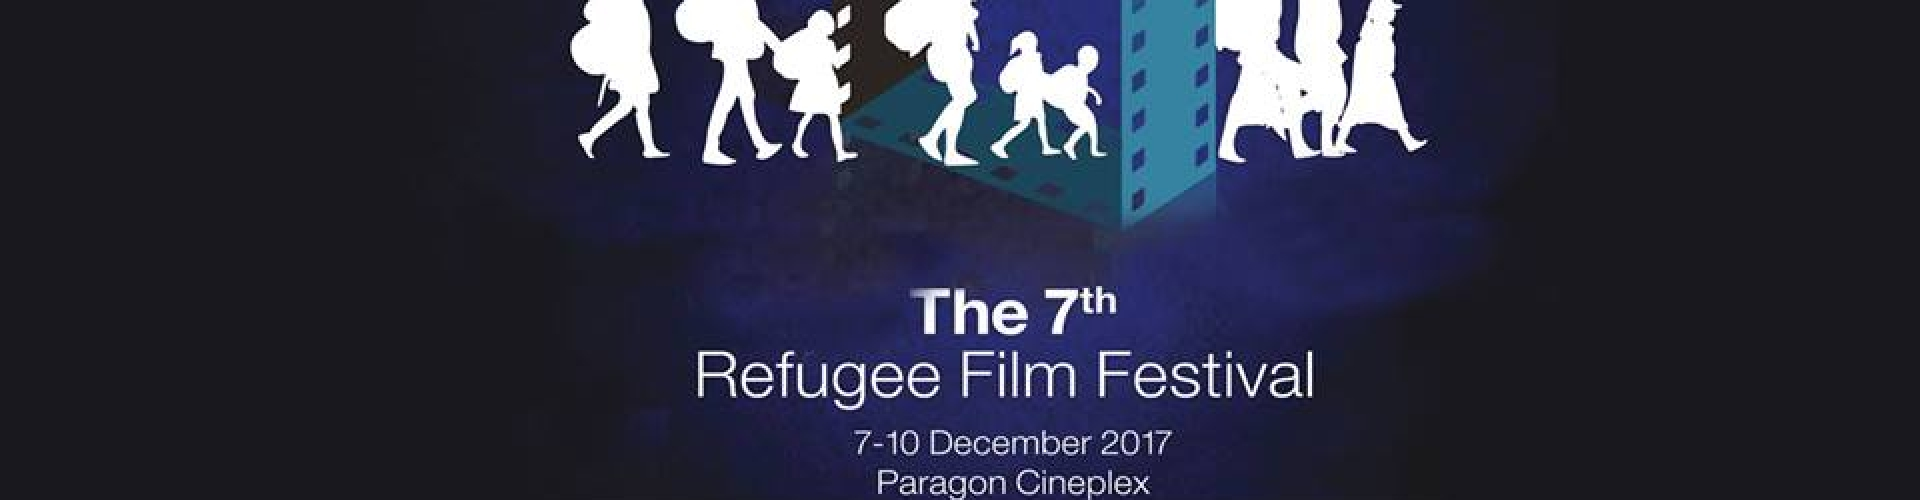 Refugee Film Festival 2017 Free Admission!